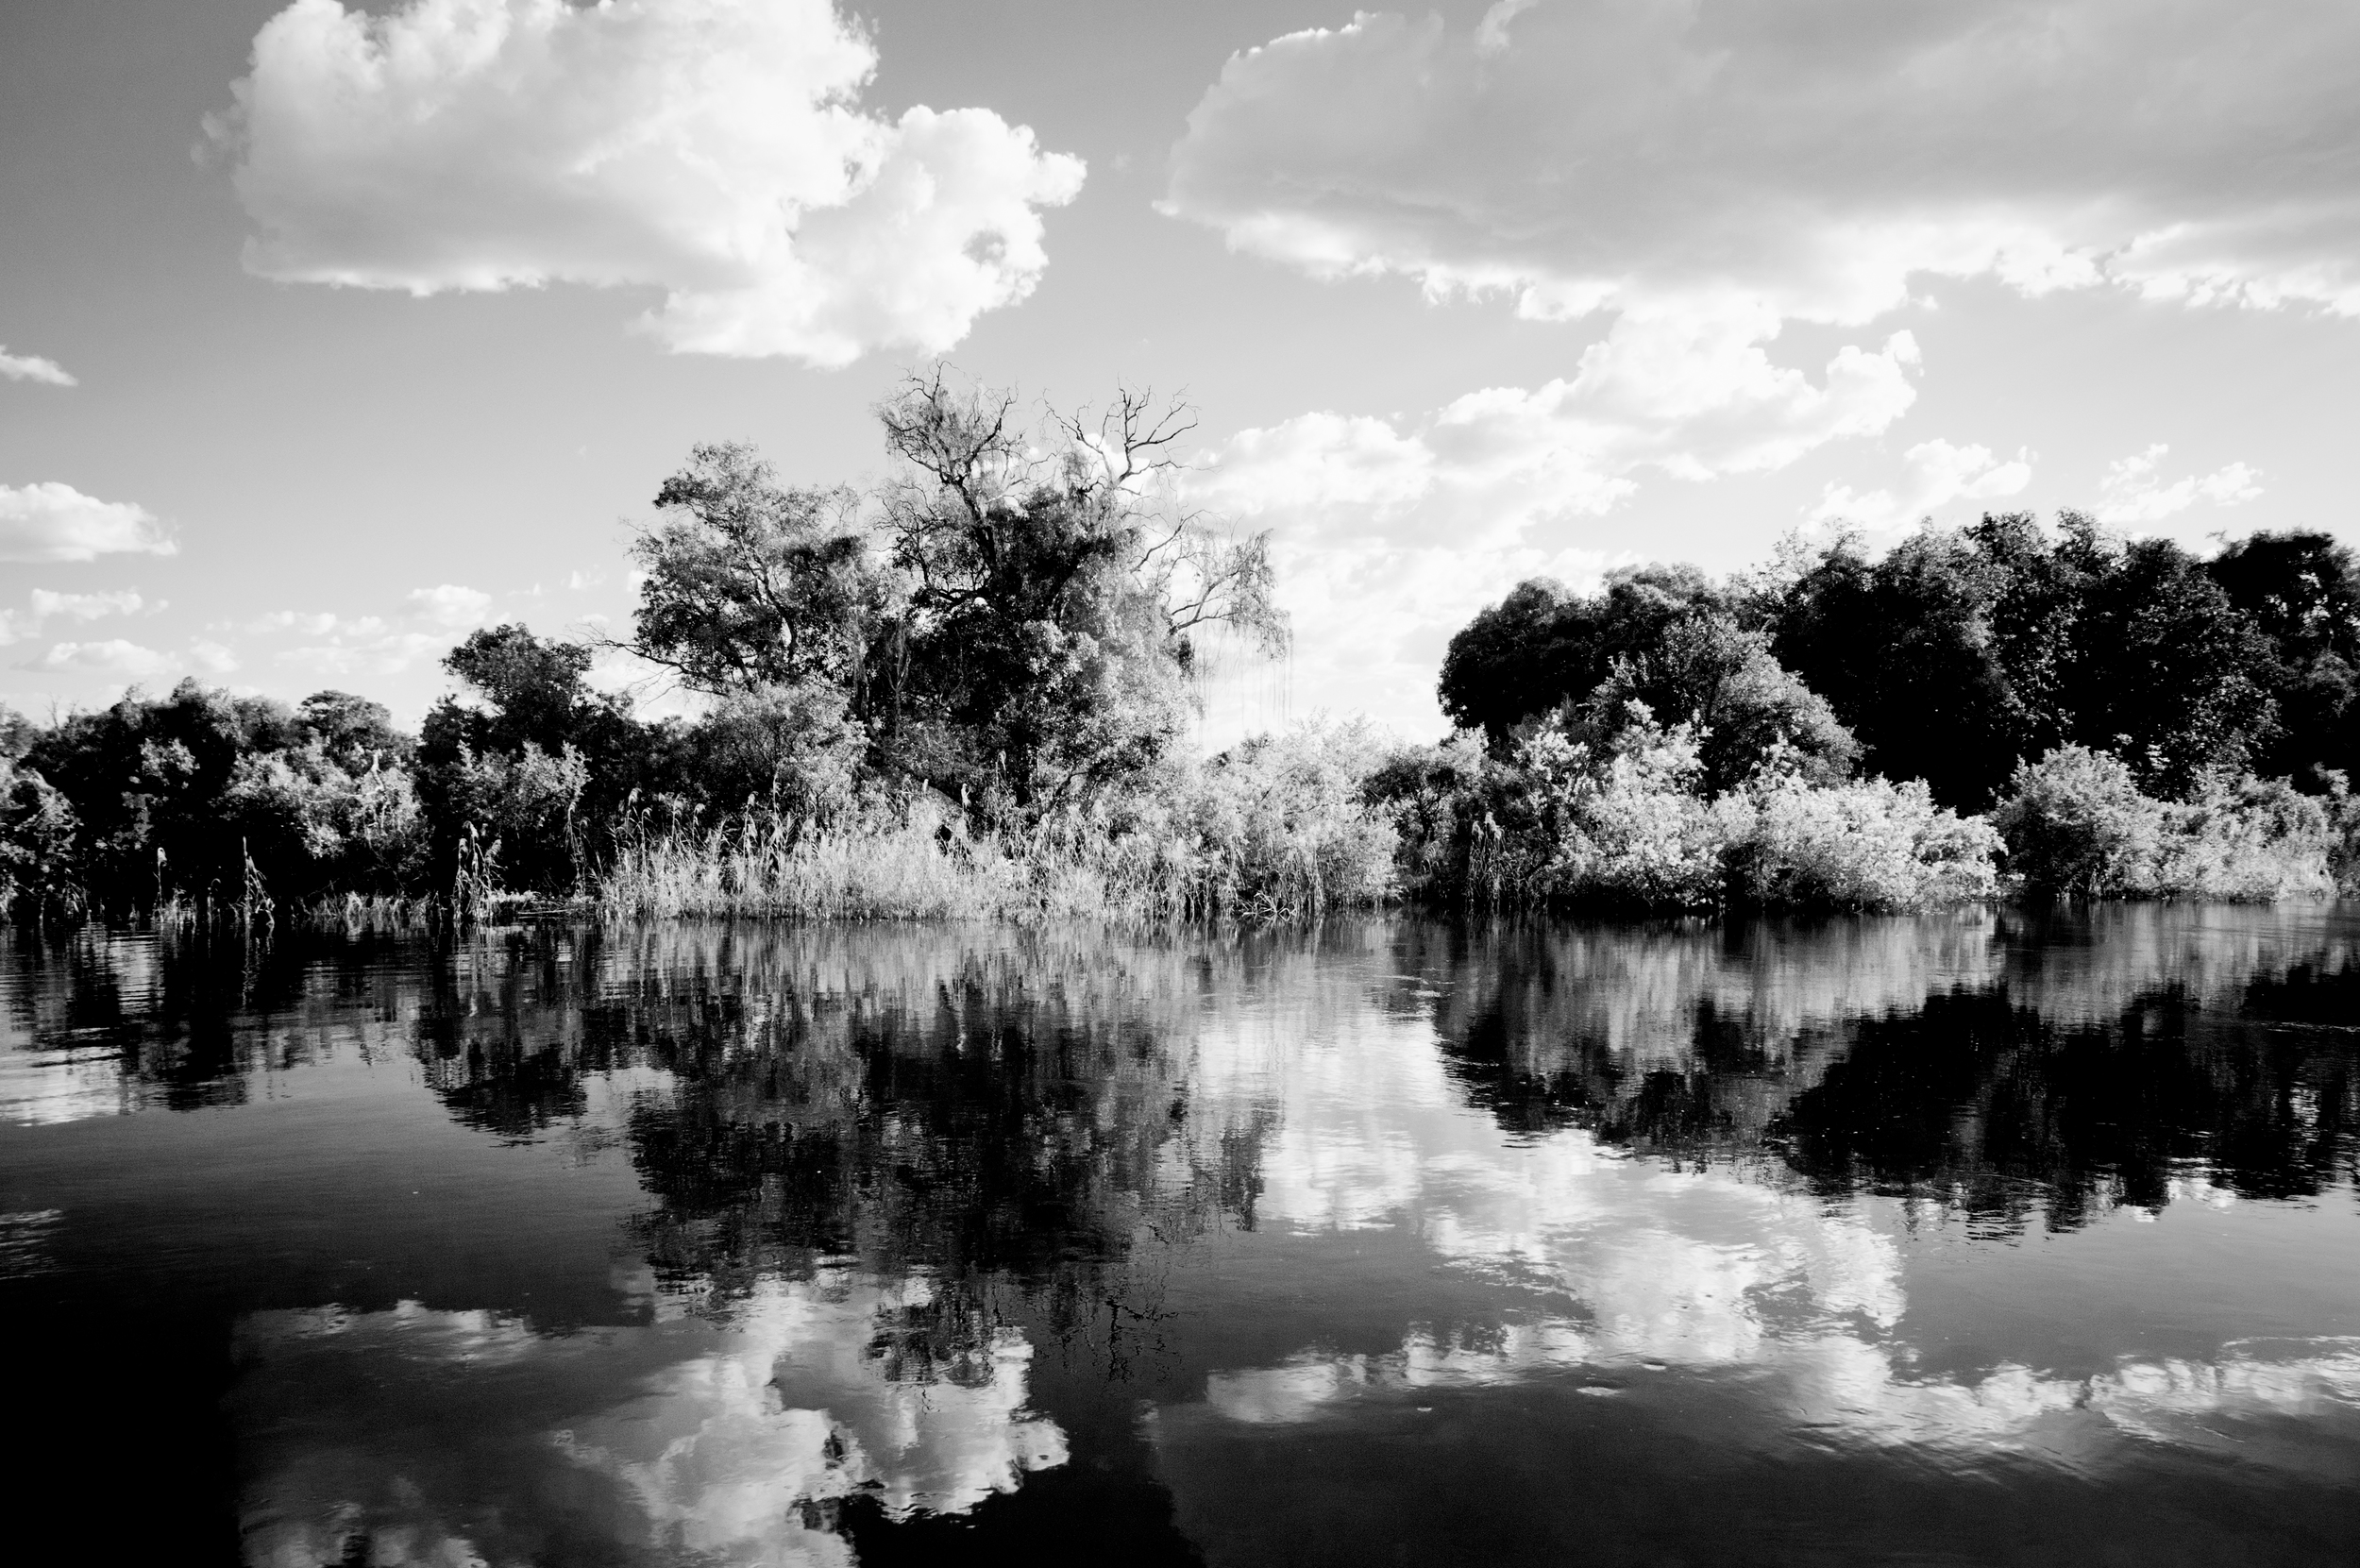 Playing with reflections, B&W